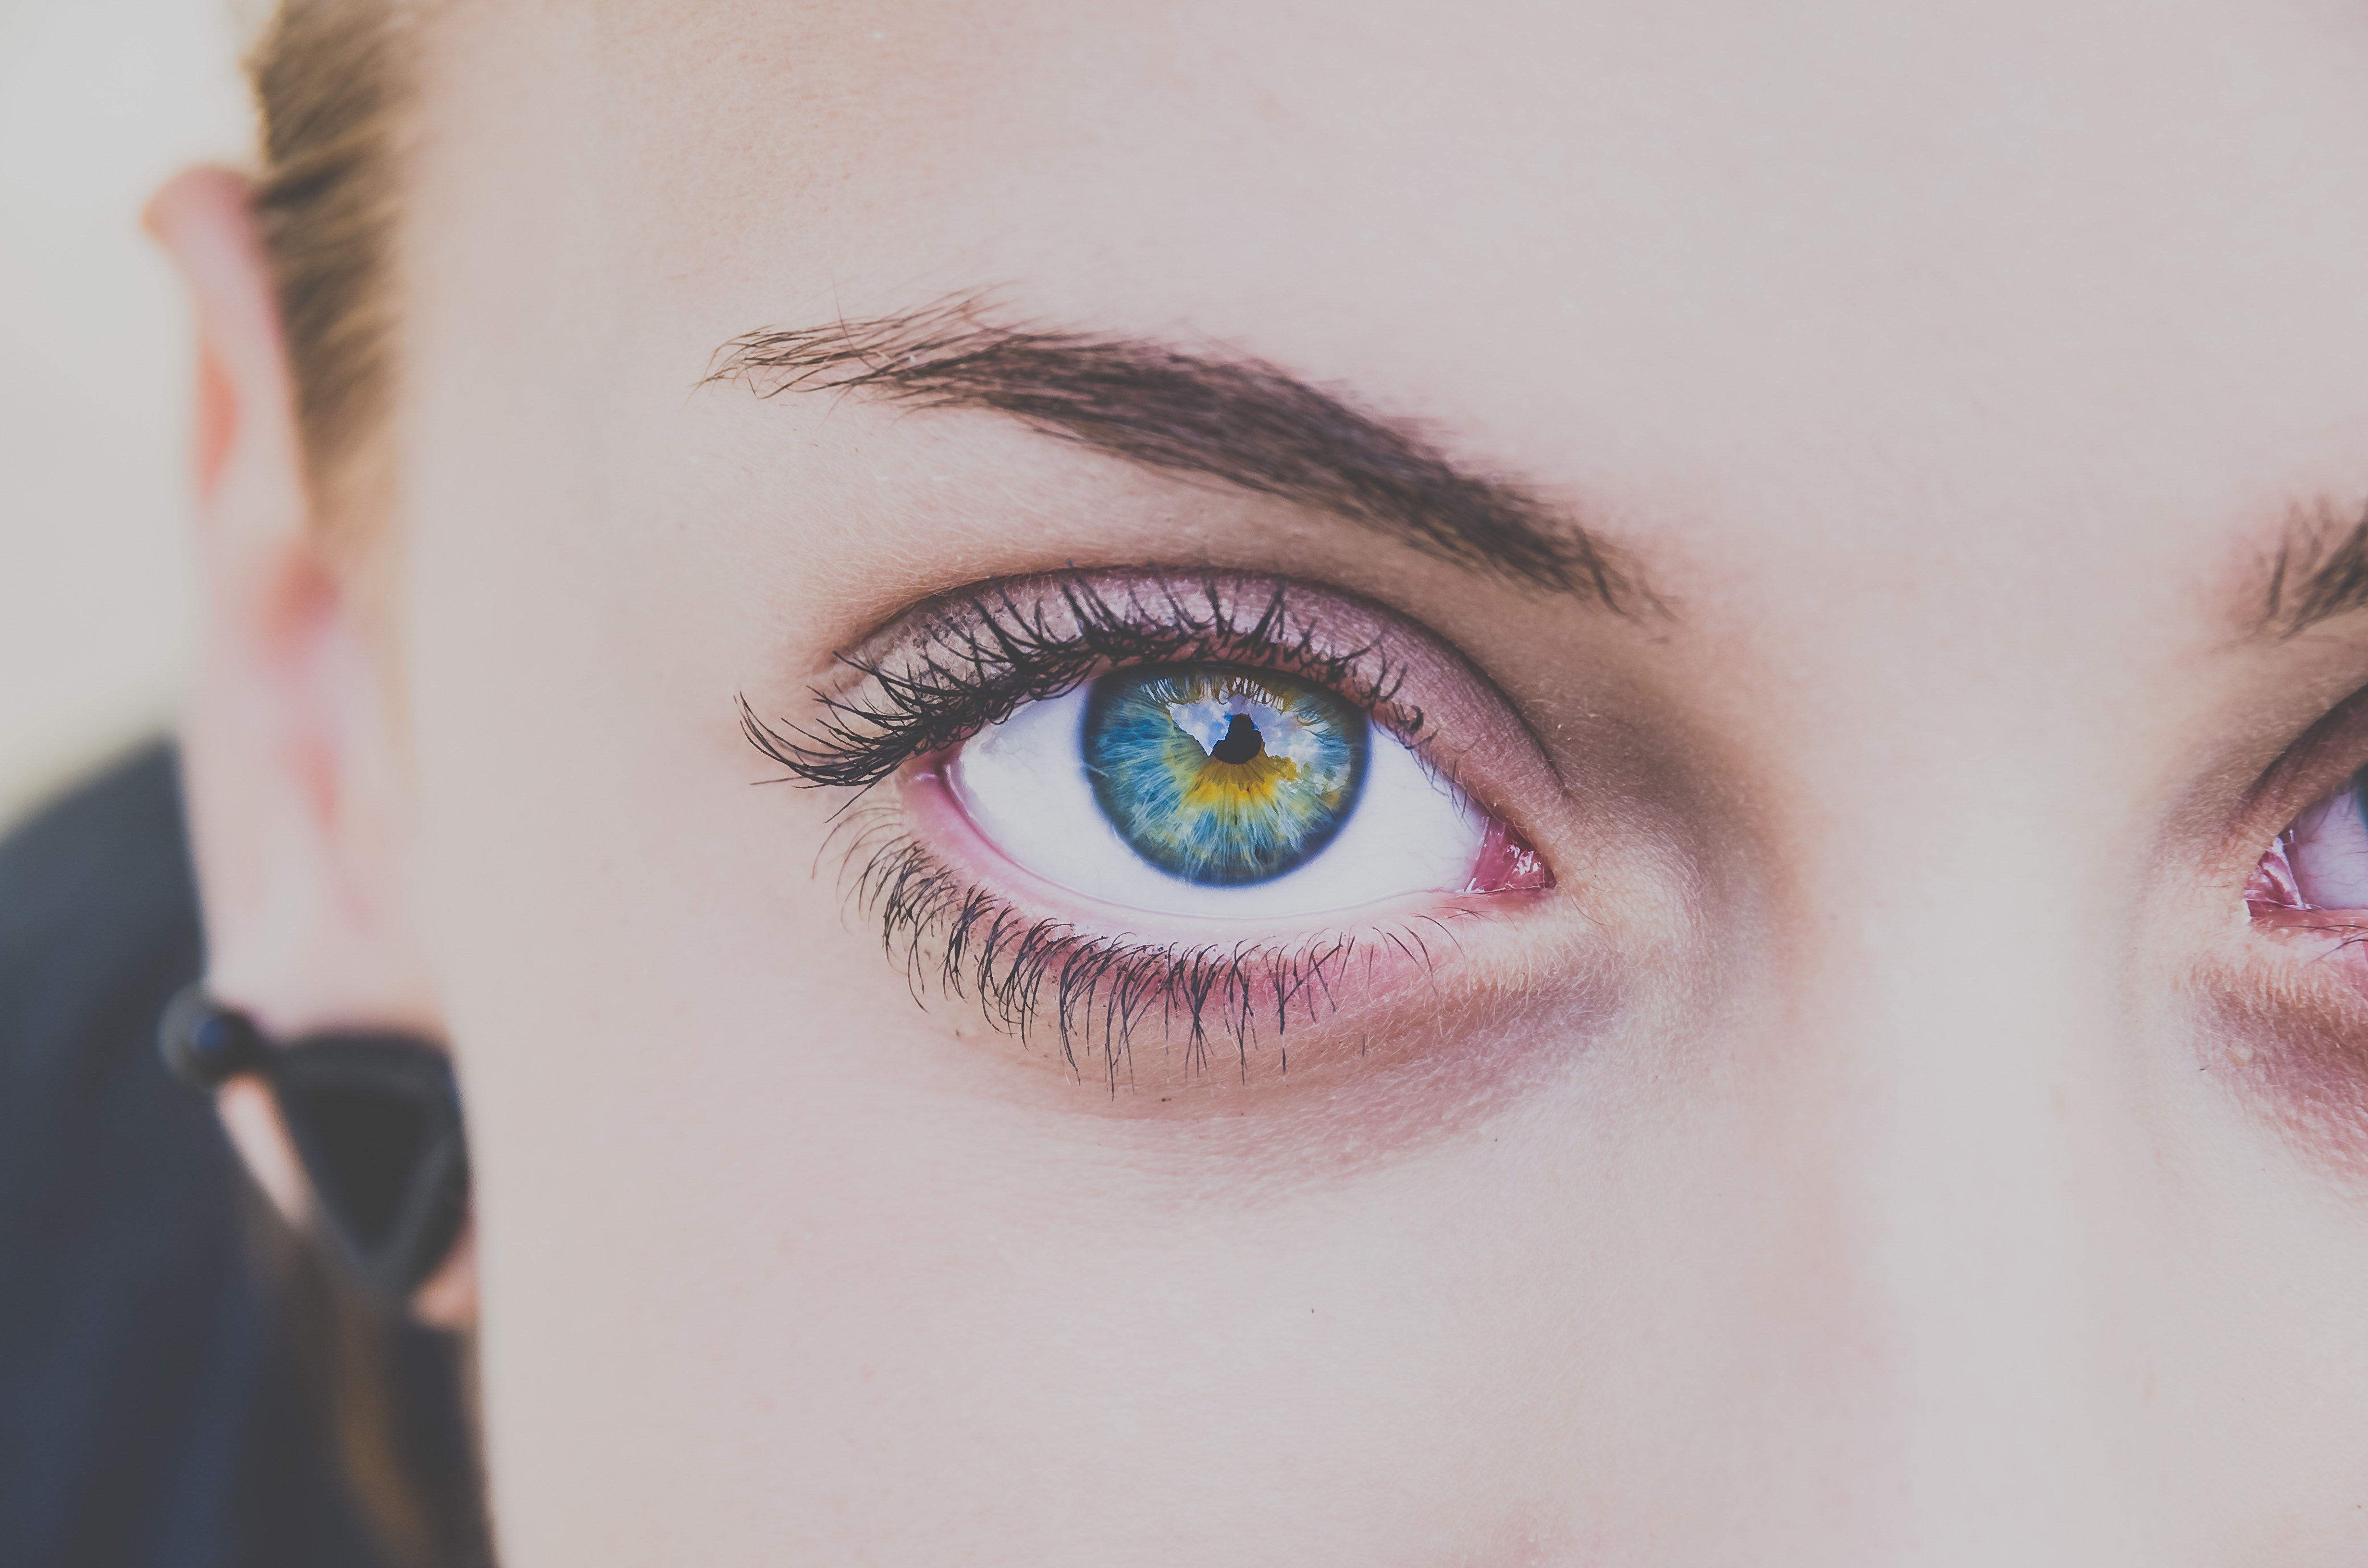 PAD testing represented by single female eye